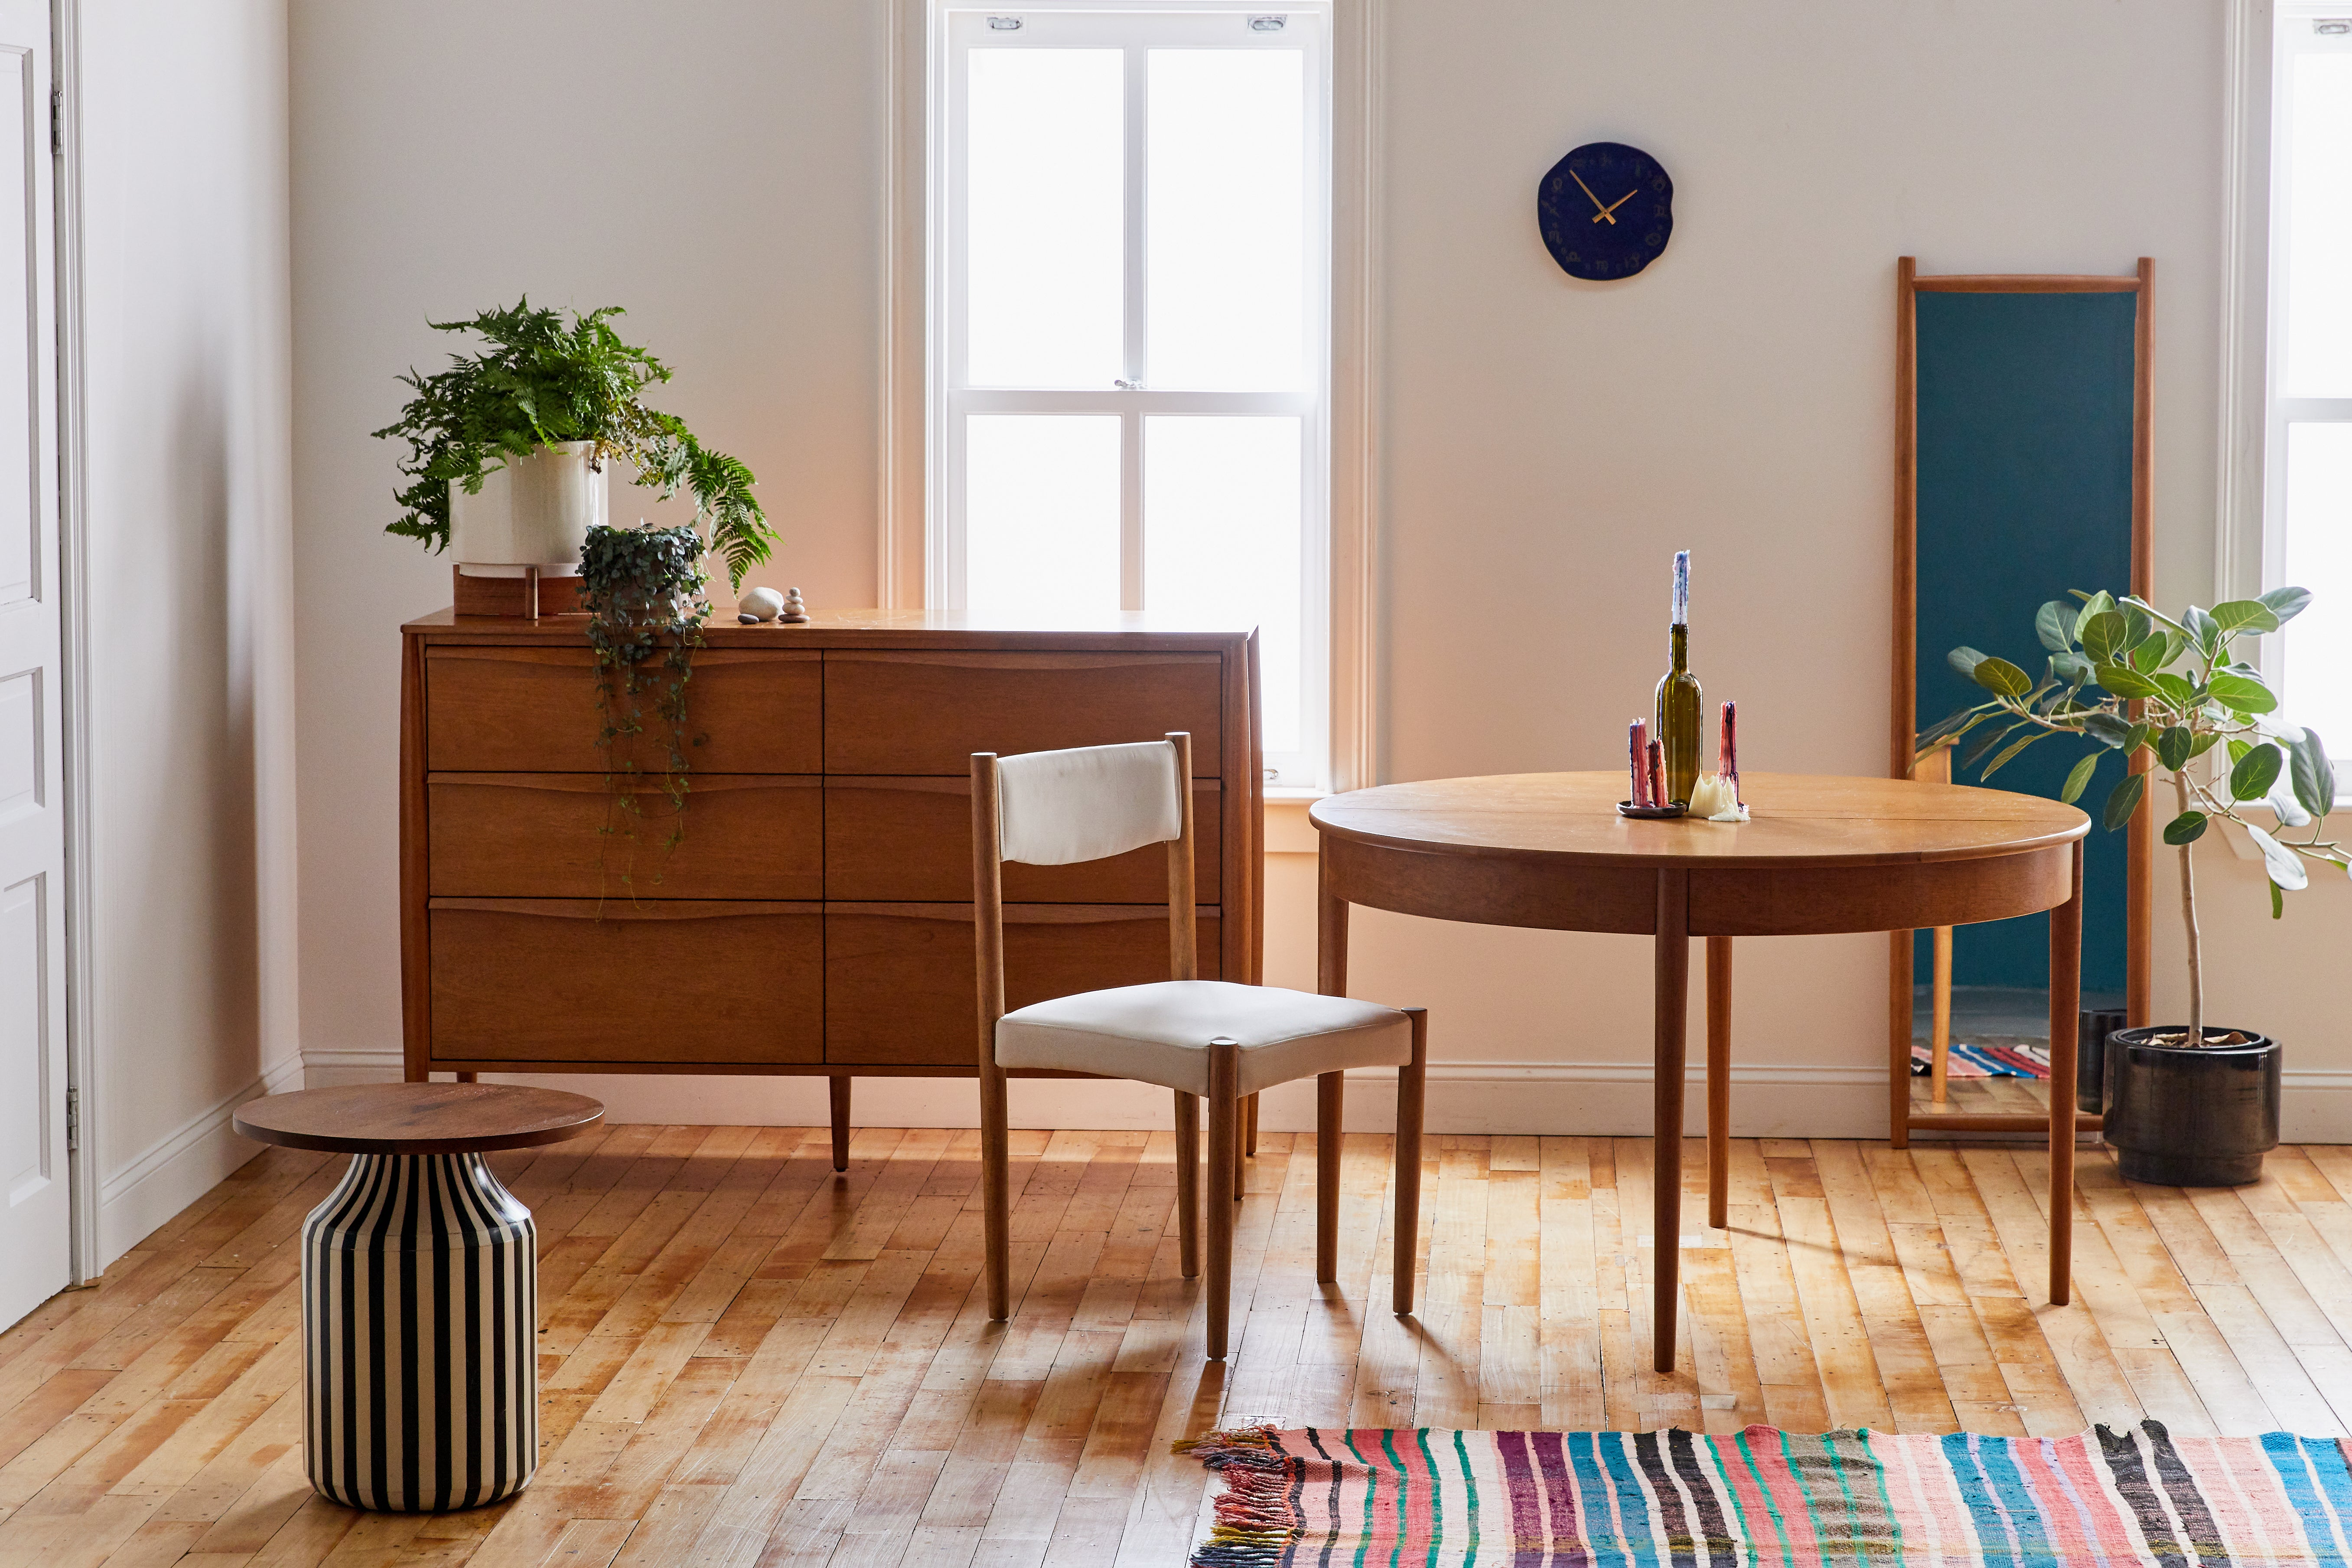 Dining room with midcentury style table and chairs, credenza, floor mirror, and colorful striped rug